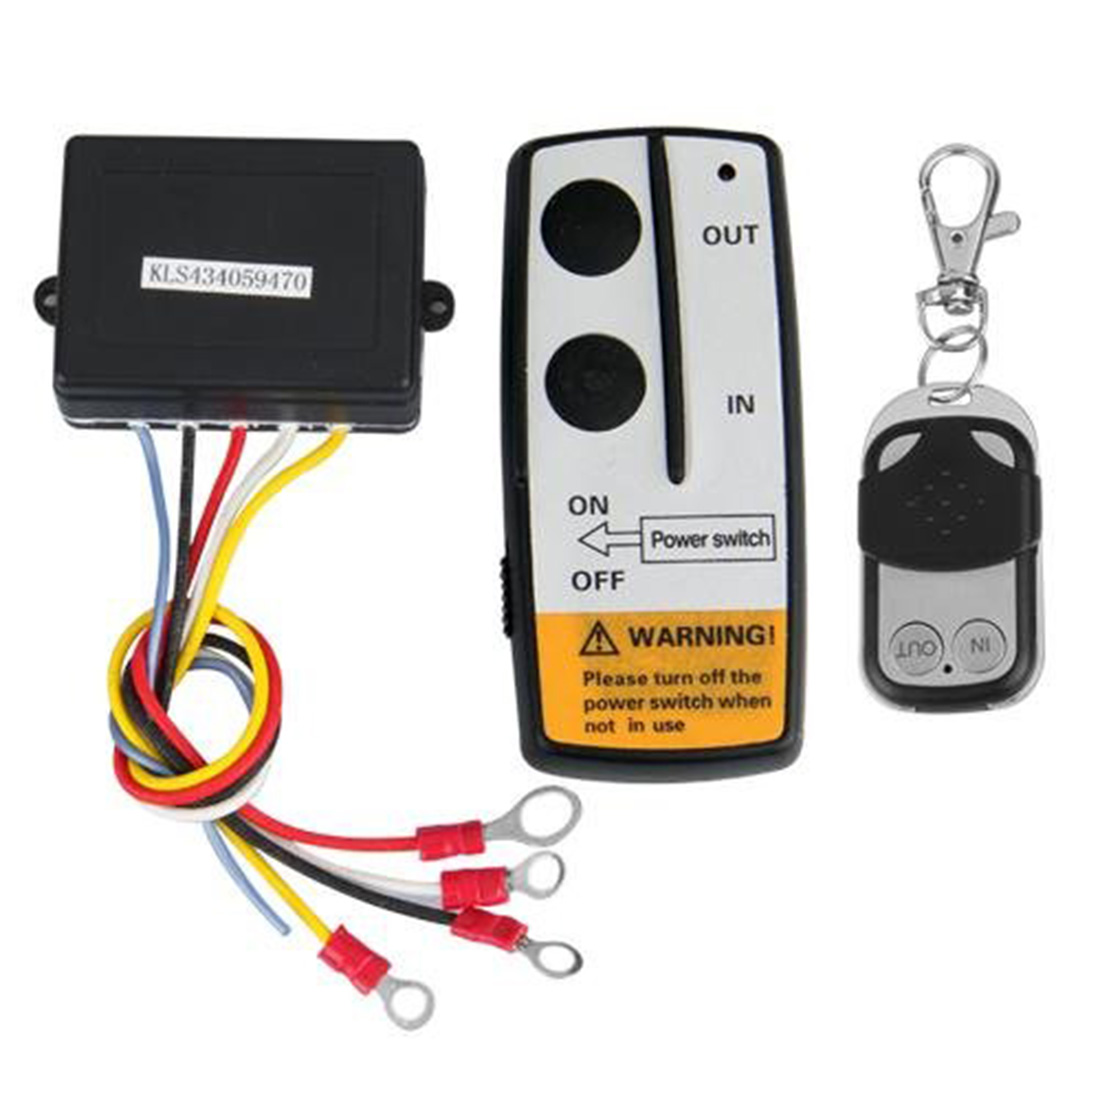 hight resolution of universal wireless winch remote control kit 12v 50ft 2 remotes with indicator light car detector for truck jeep atv suv